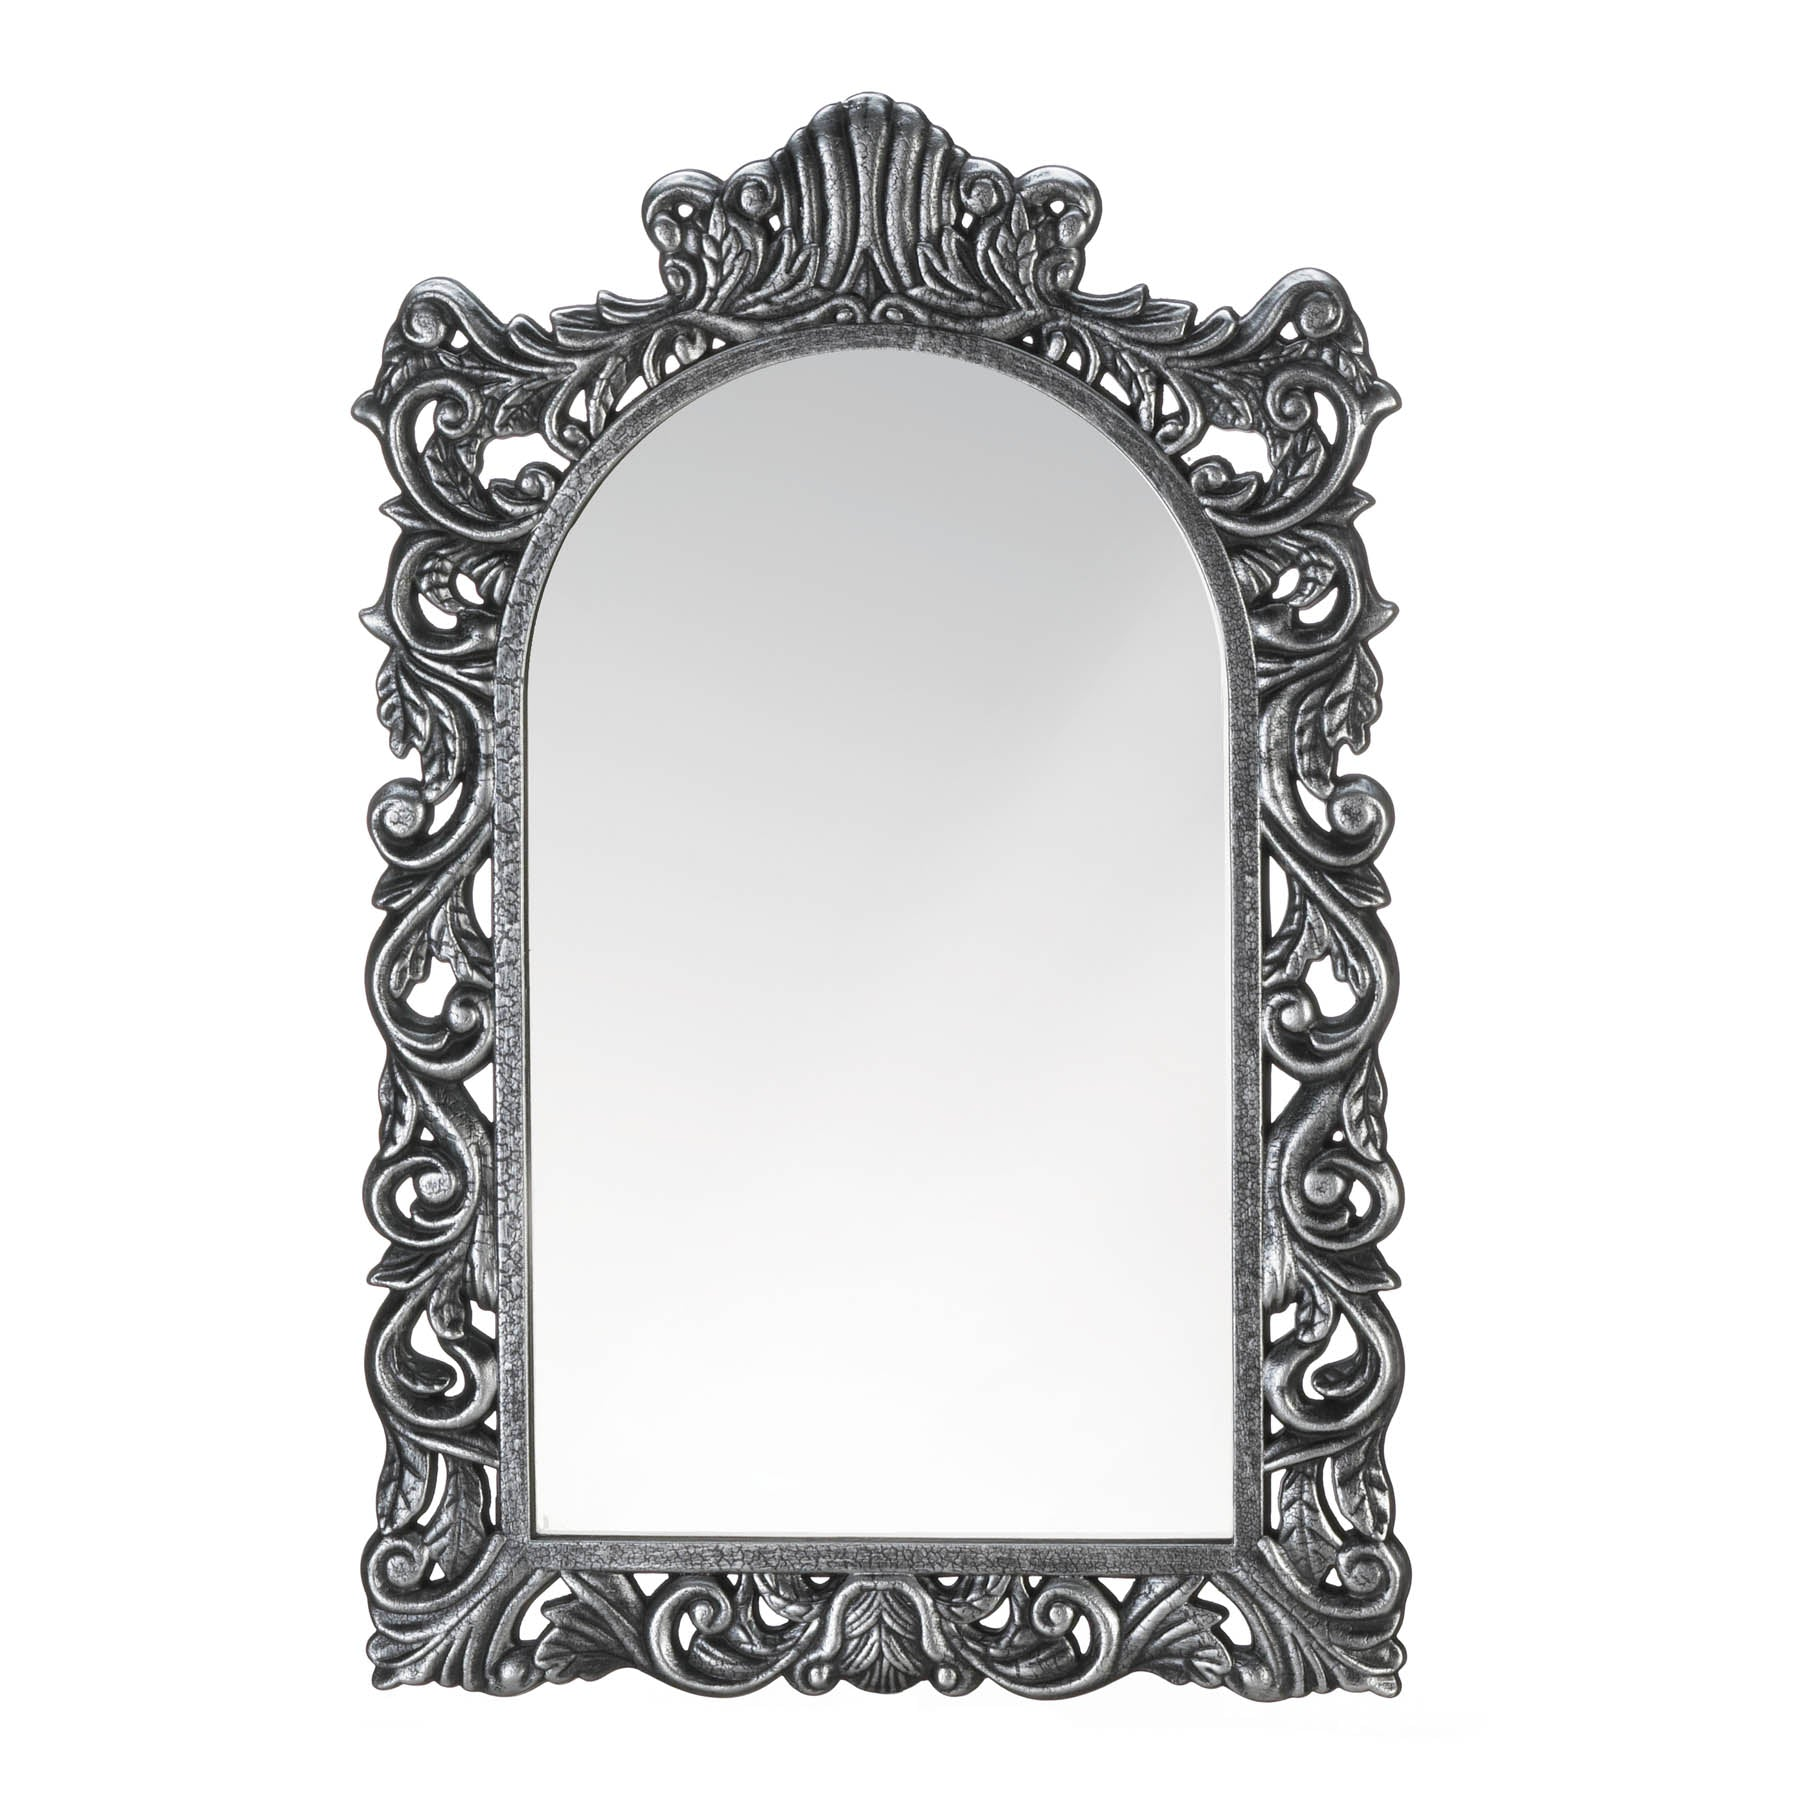 Accent Plus Grand Silver Wall Mirror - 10018870